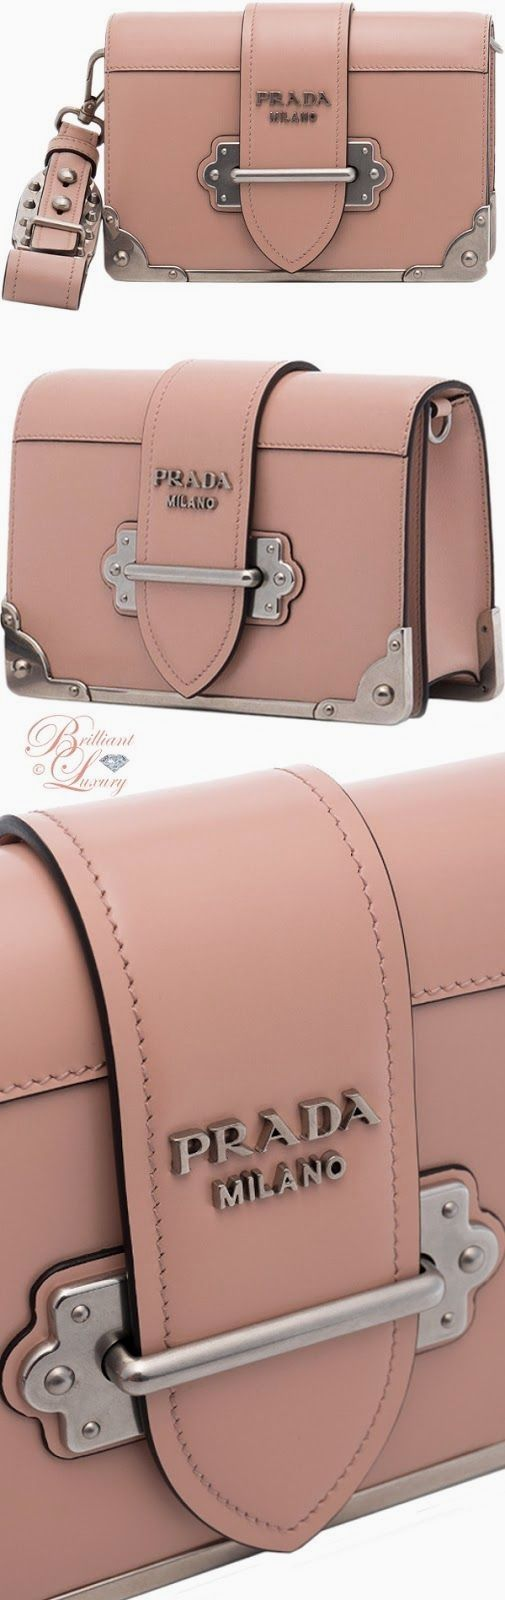 Brilliant Luxury Prada Cahier Mini Shoulder Bag Wow This Is Super Cute Probably In Another Color Soft Leather Handb Leather Handbags Bags Mini Shoulder Bag